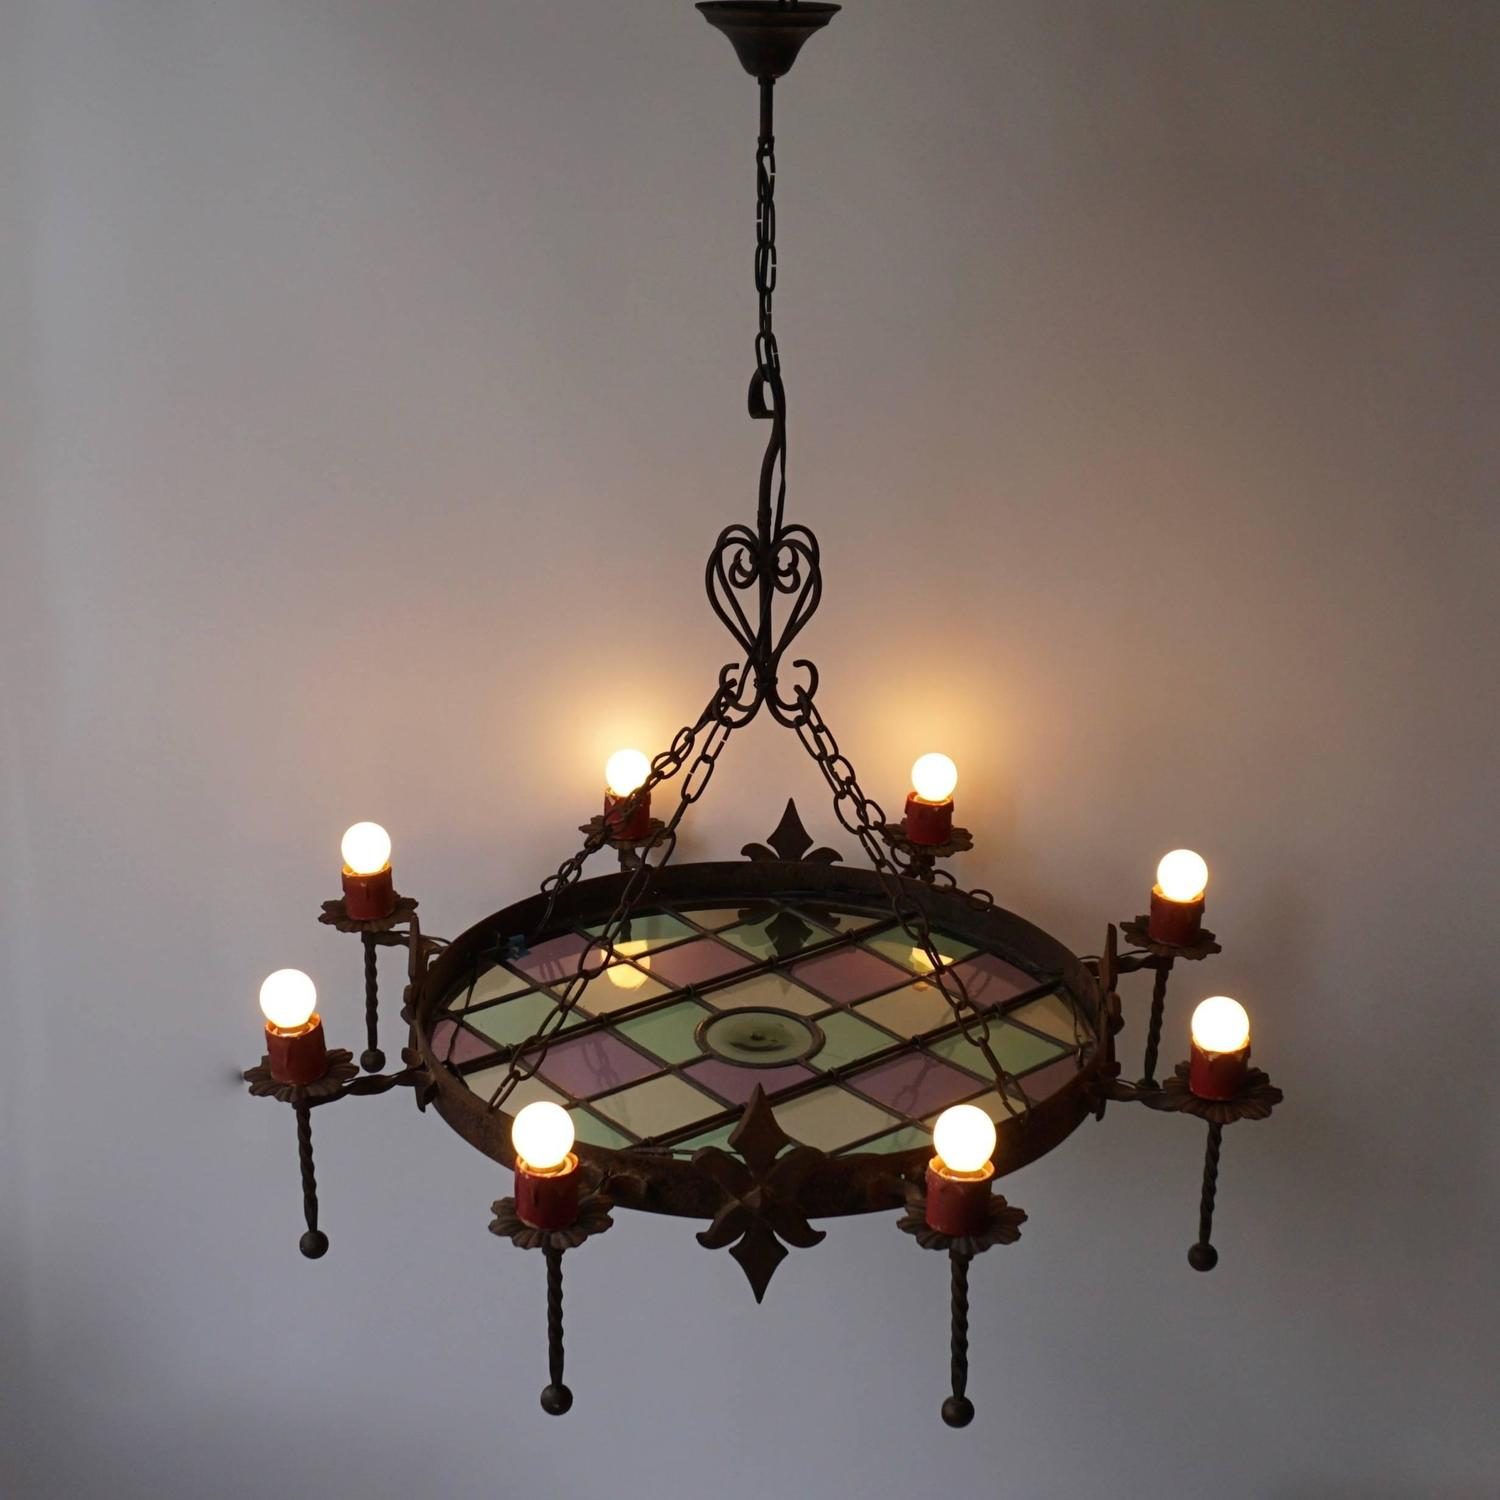 rustic wrought iron belgium chandelier for sale at 1stdibs. Black Bedroom Furniture Sets. Home Design Ideas